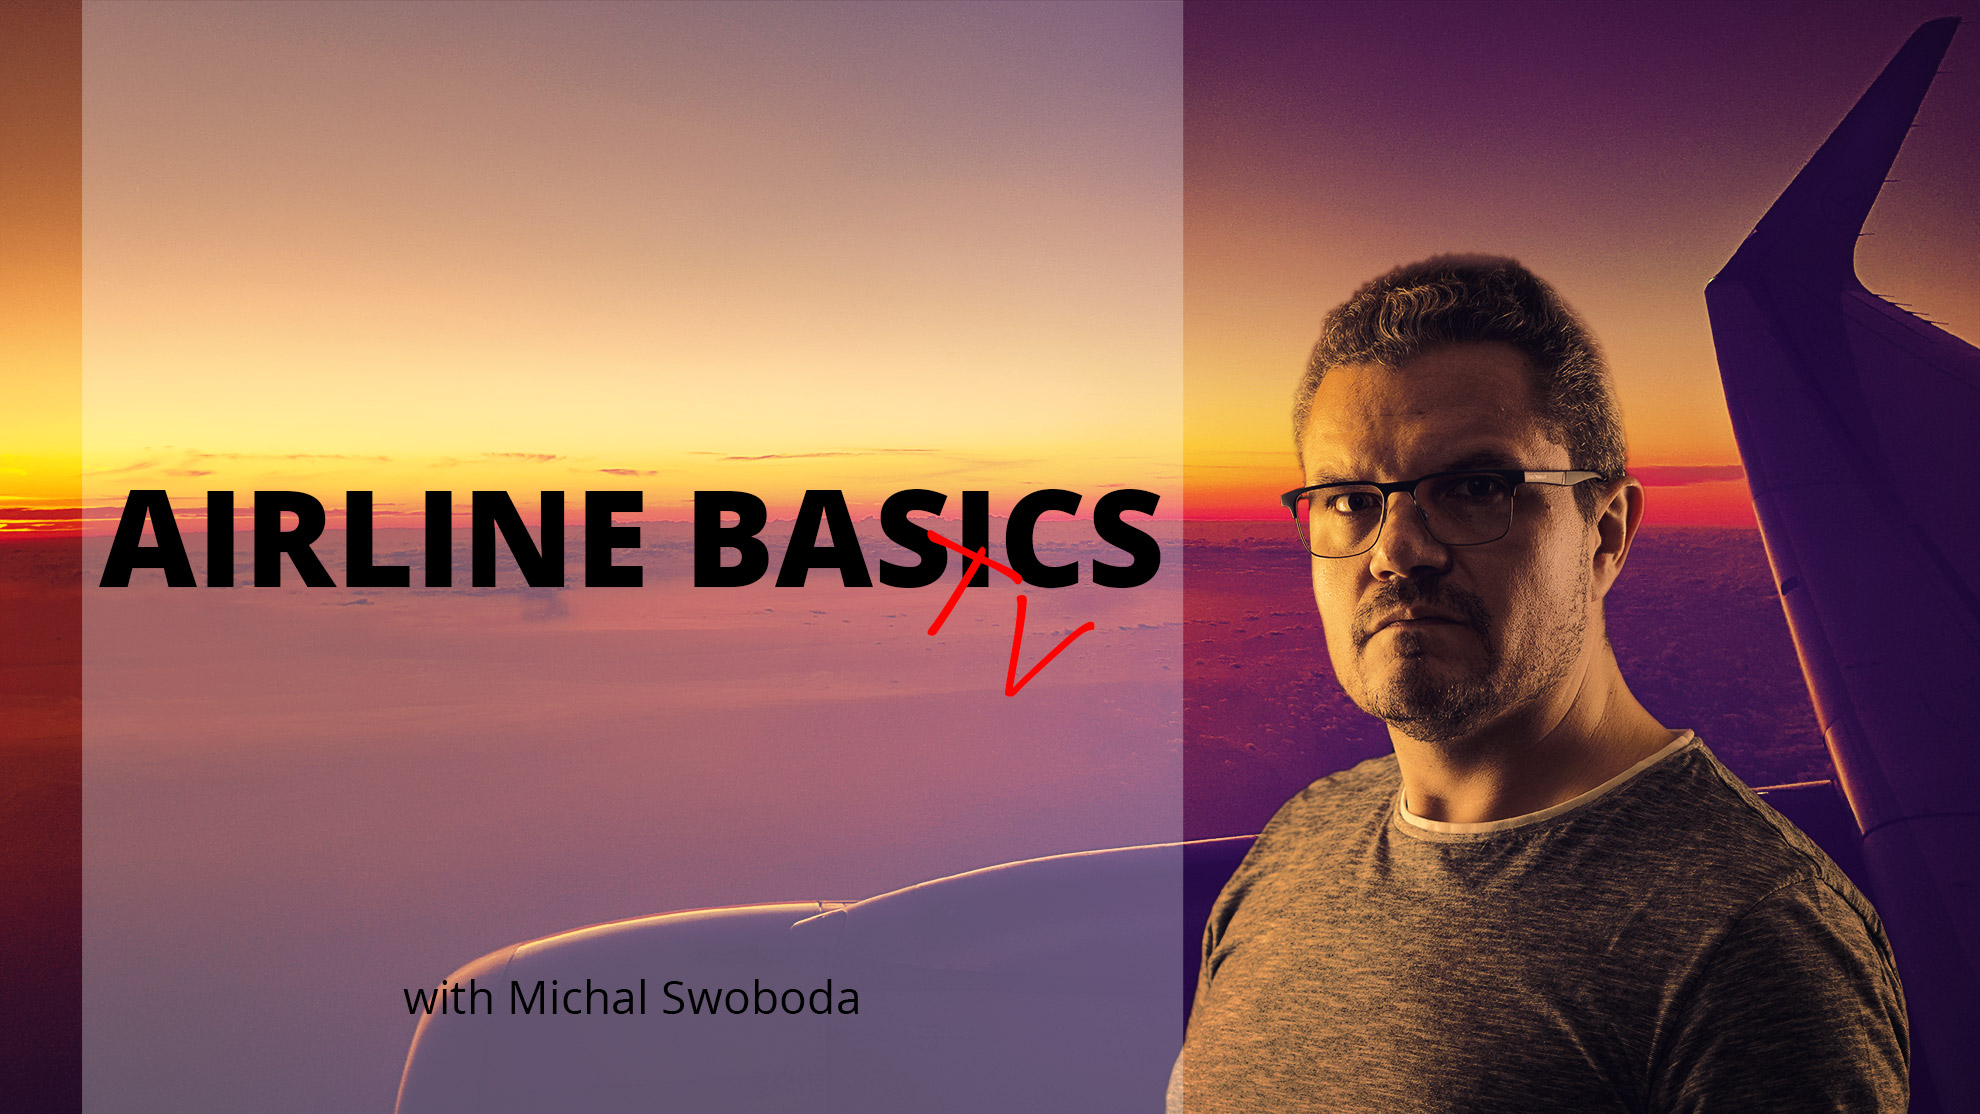 Airline Basics You Tube Channel